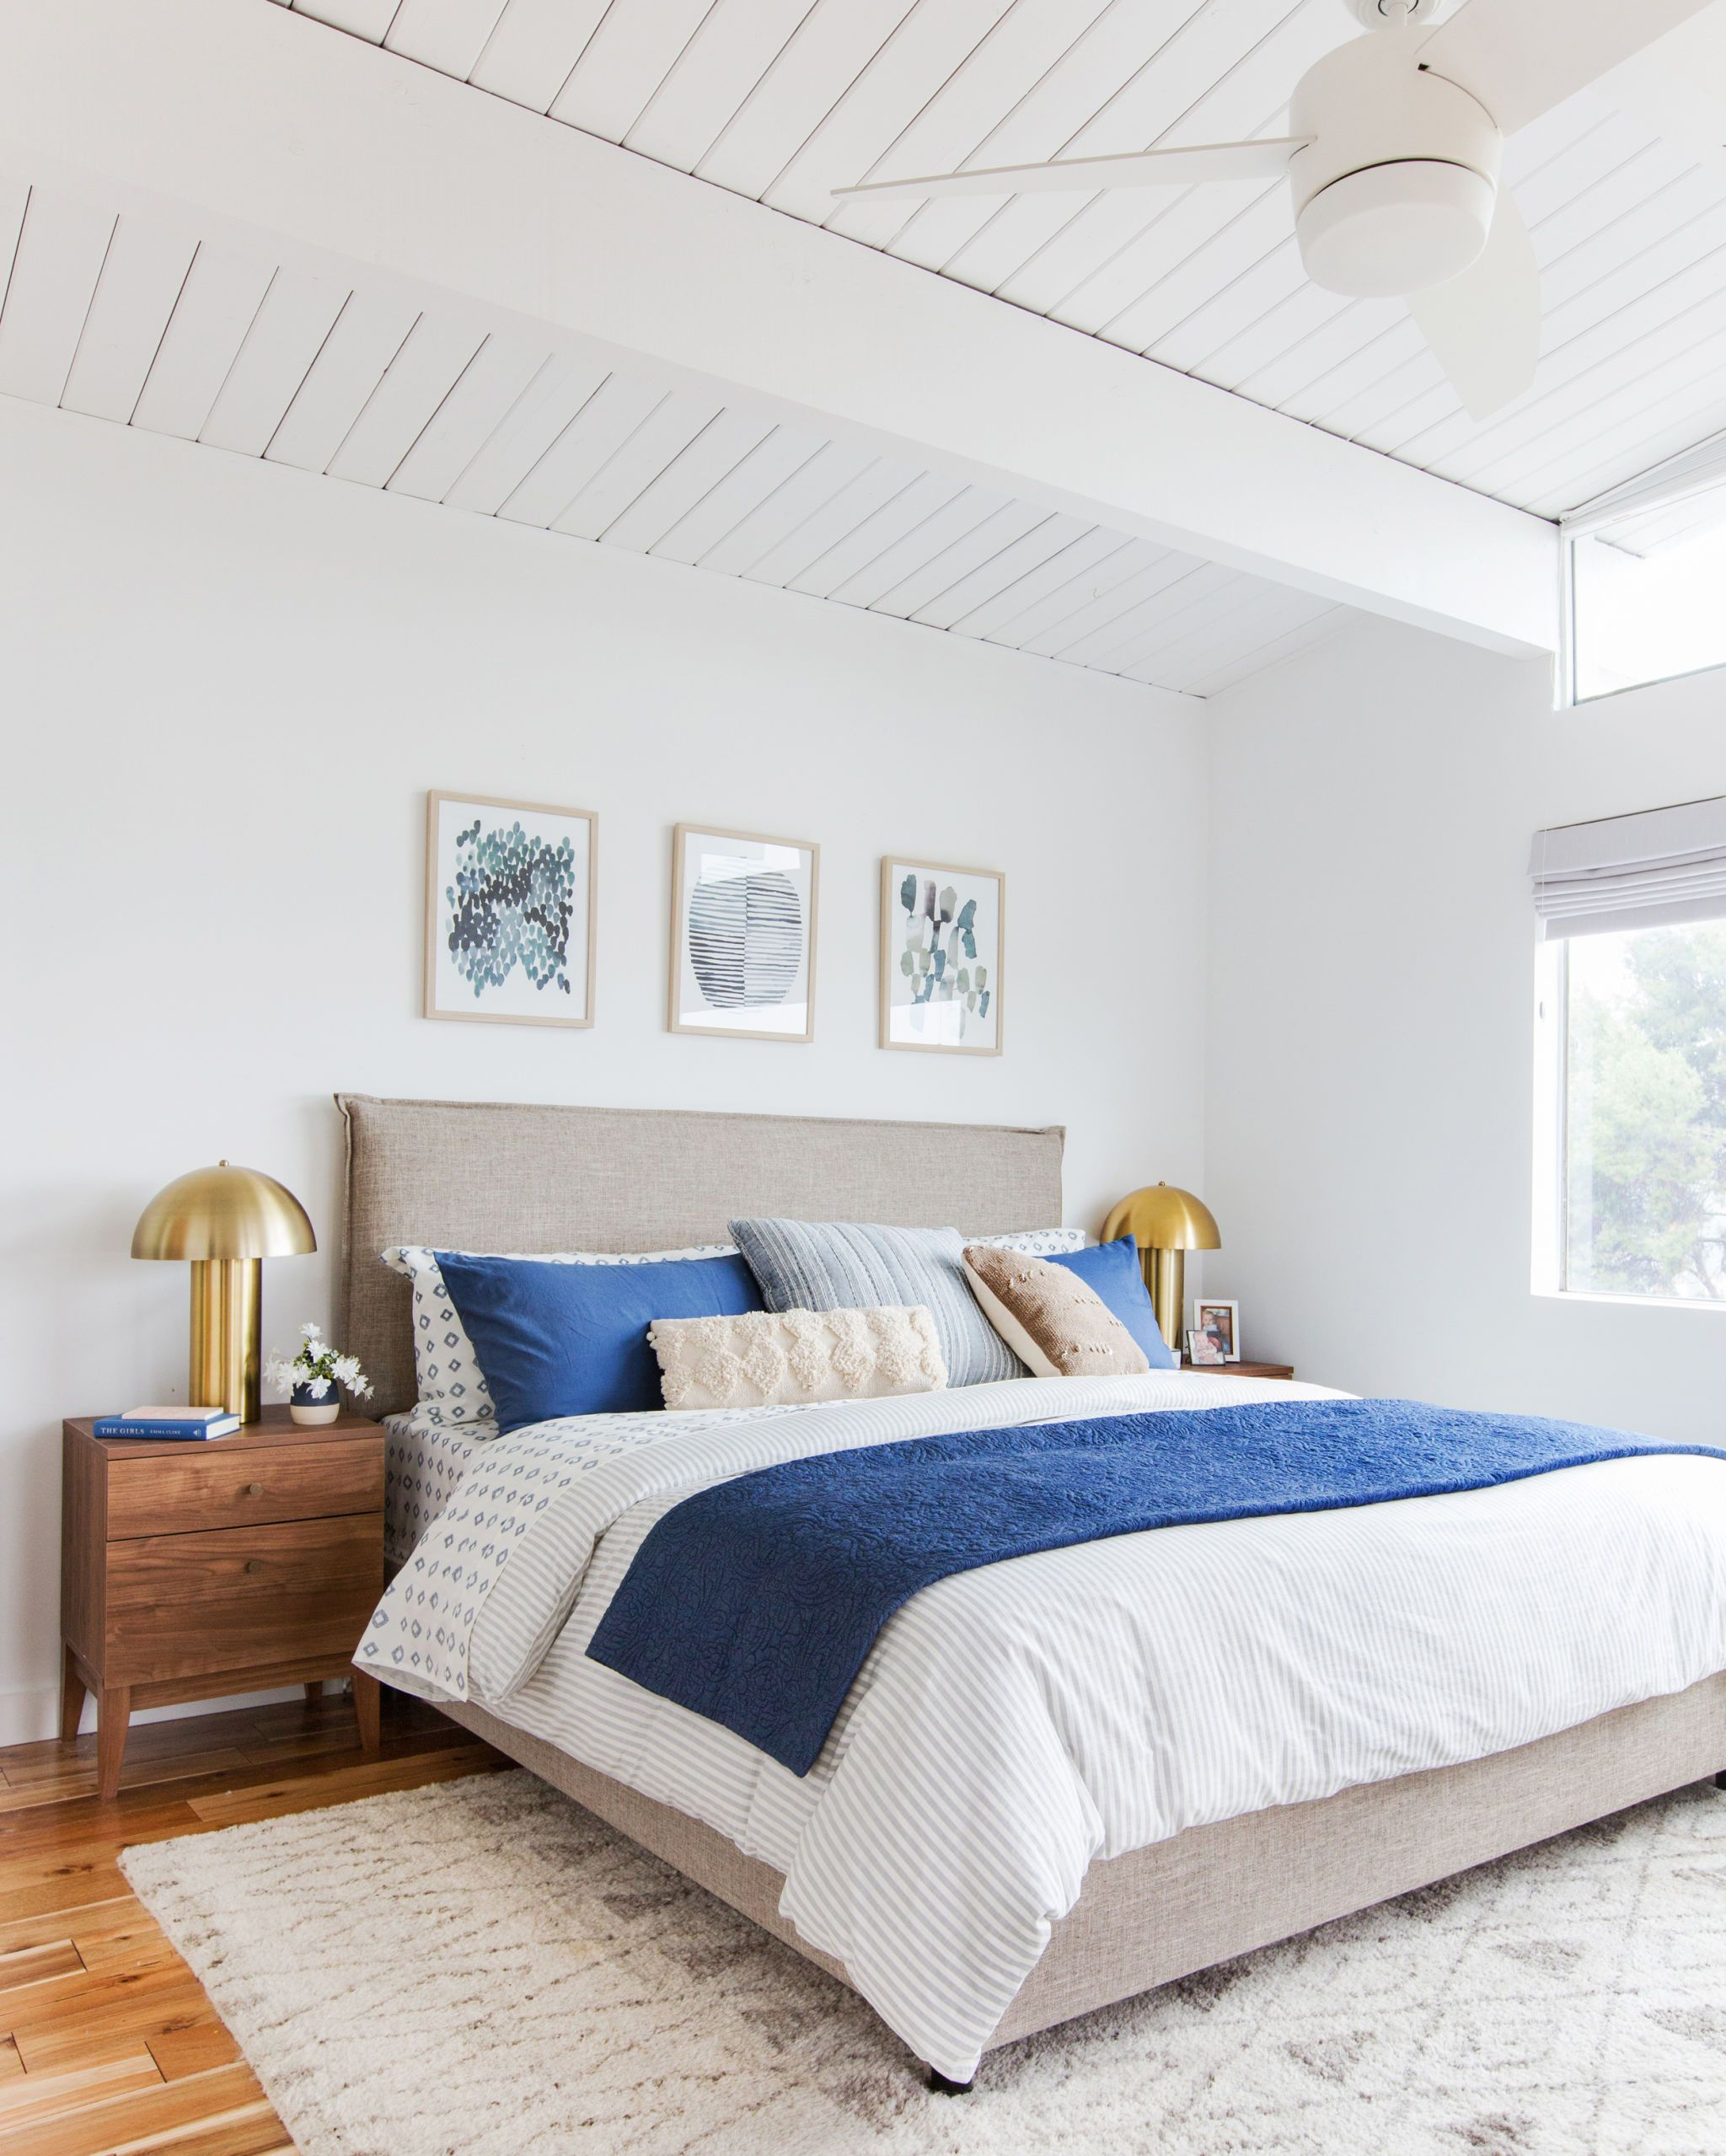 Styling To Sell - The (new) Master Bedroom